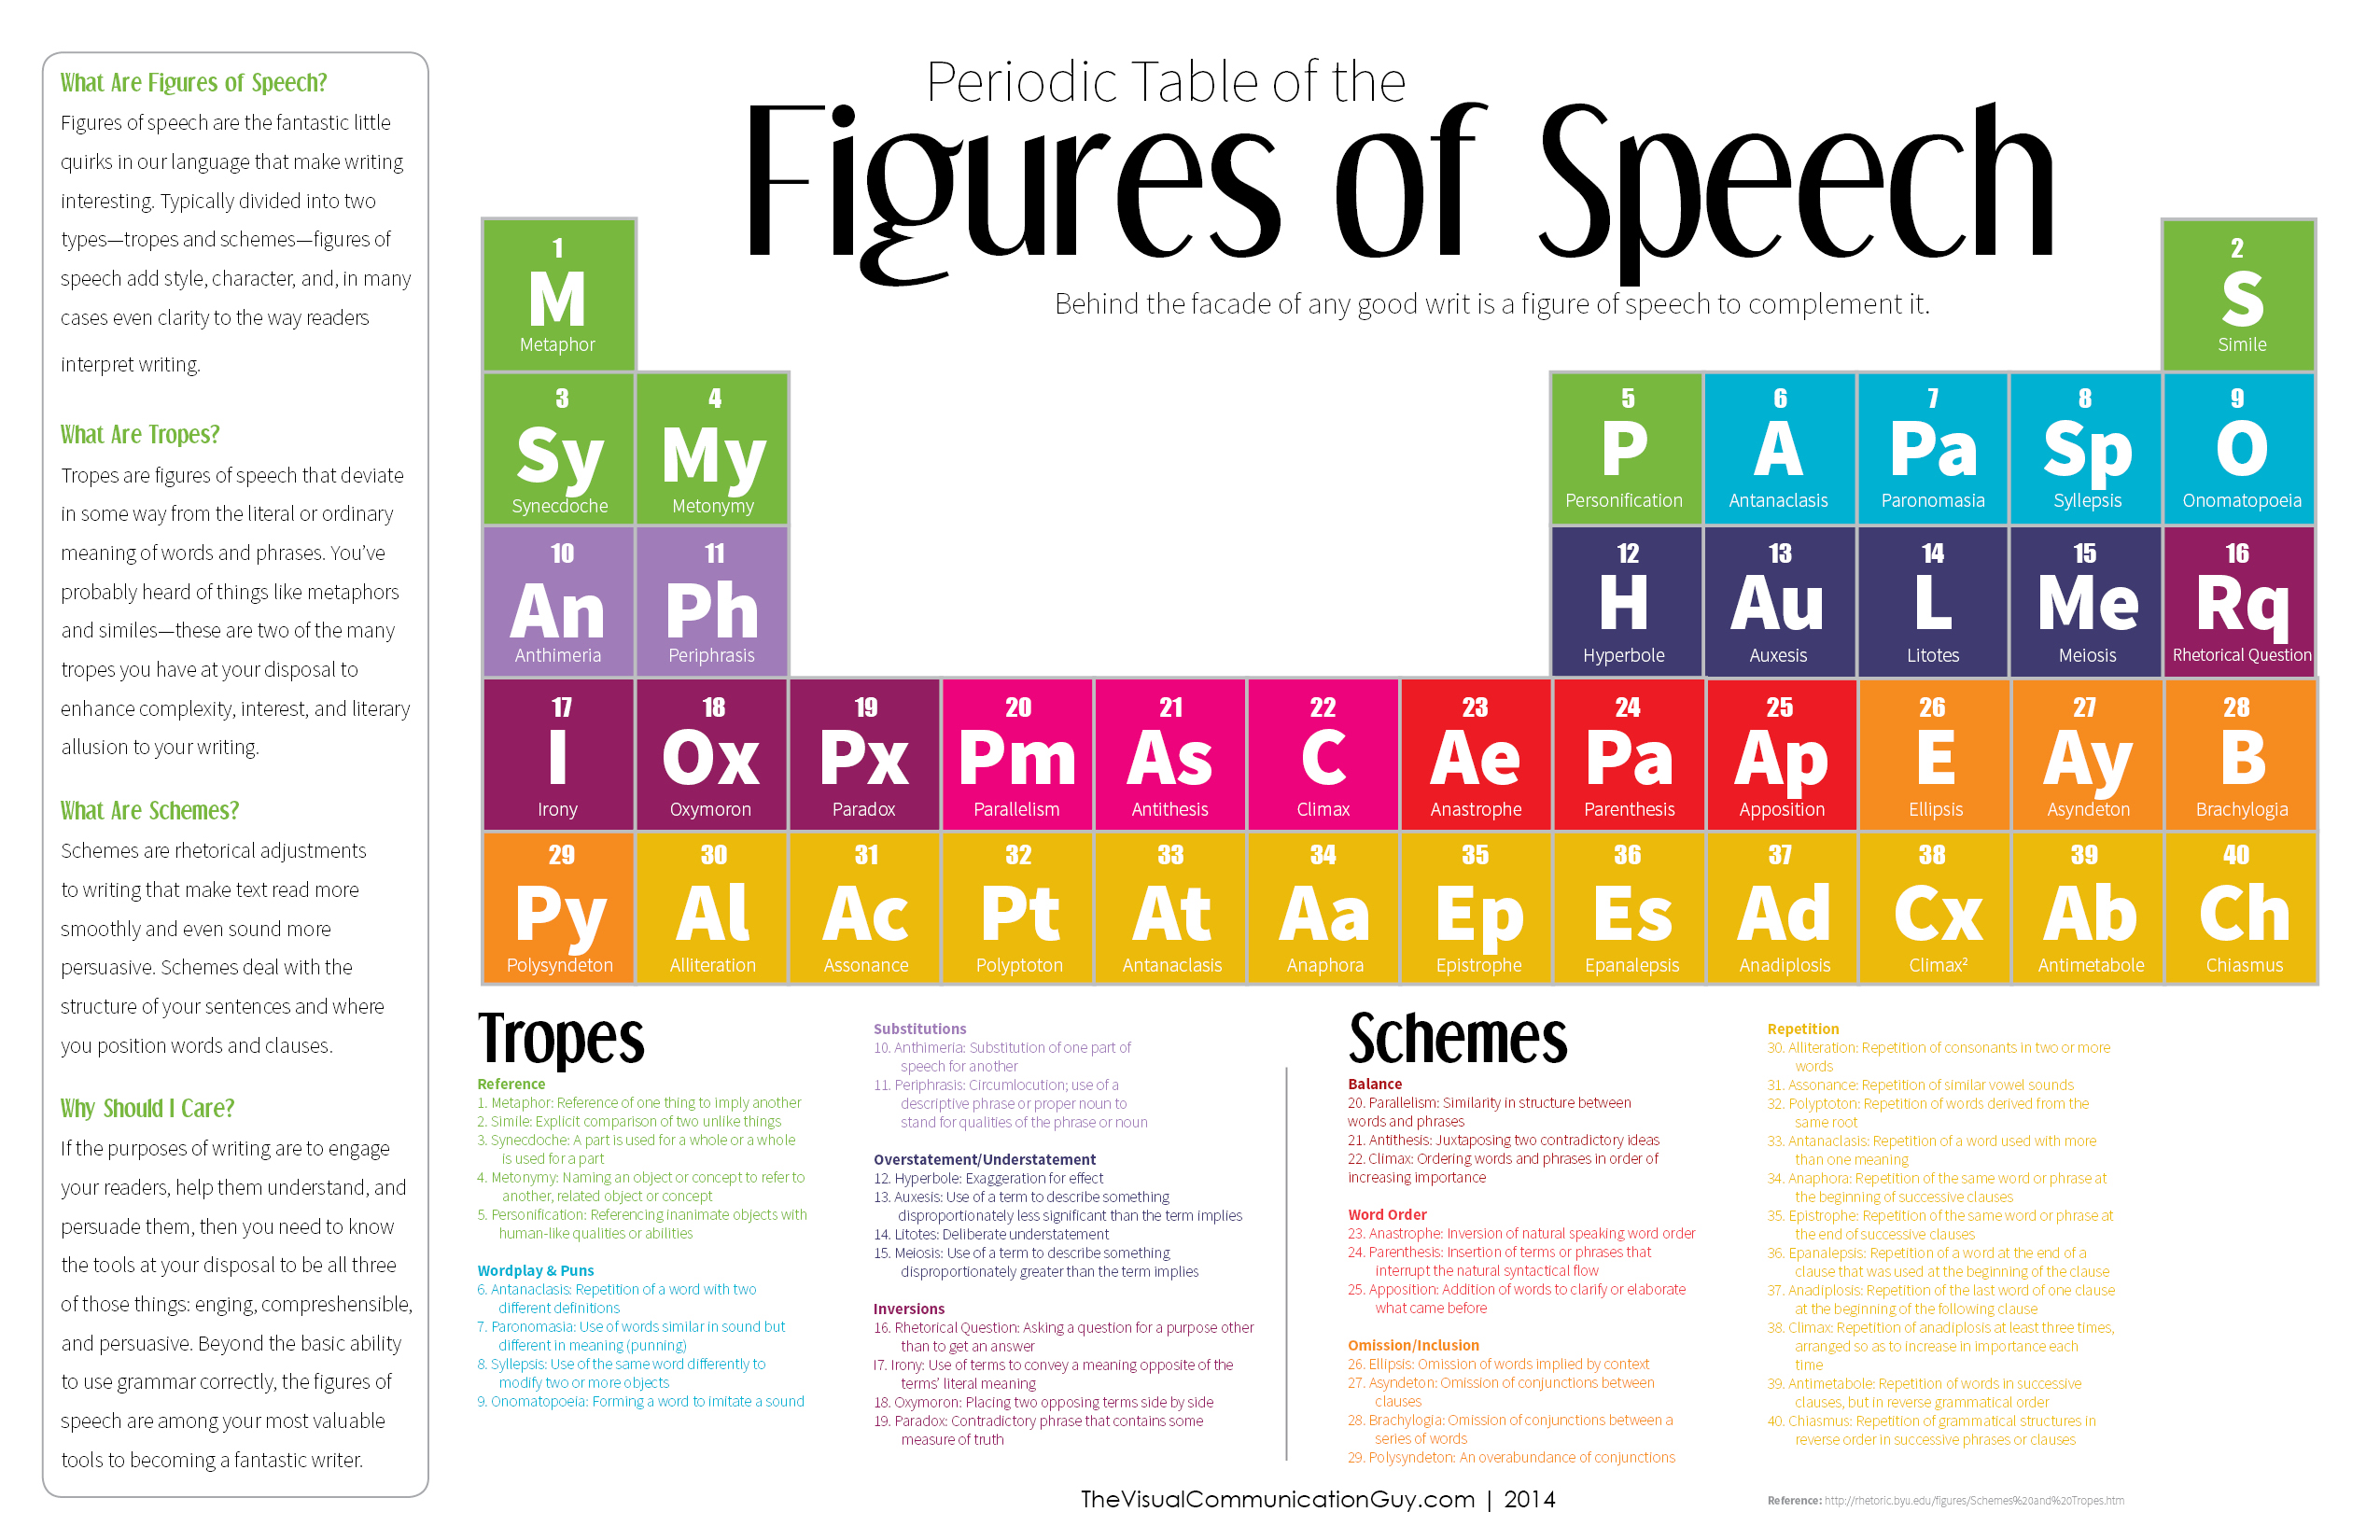 The periodic table of the figures of speech 40 ways to improve periodic table of the figures of speech gamestrikefo Gallery